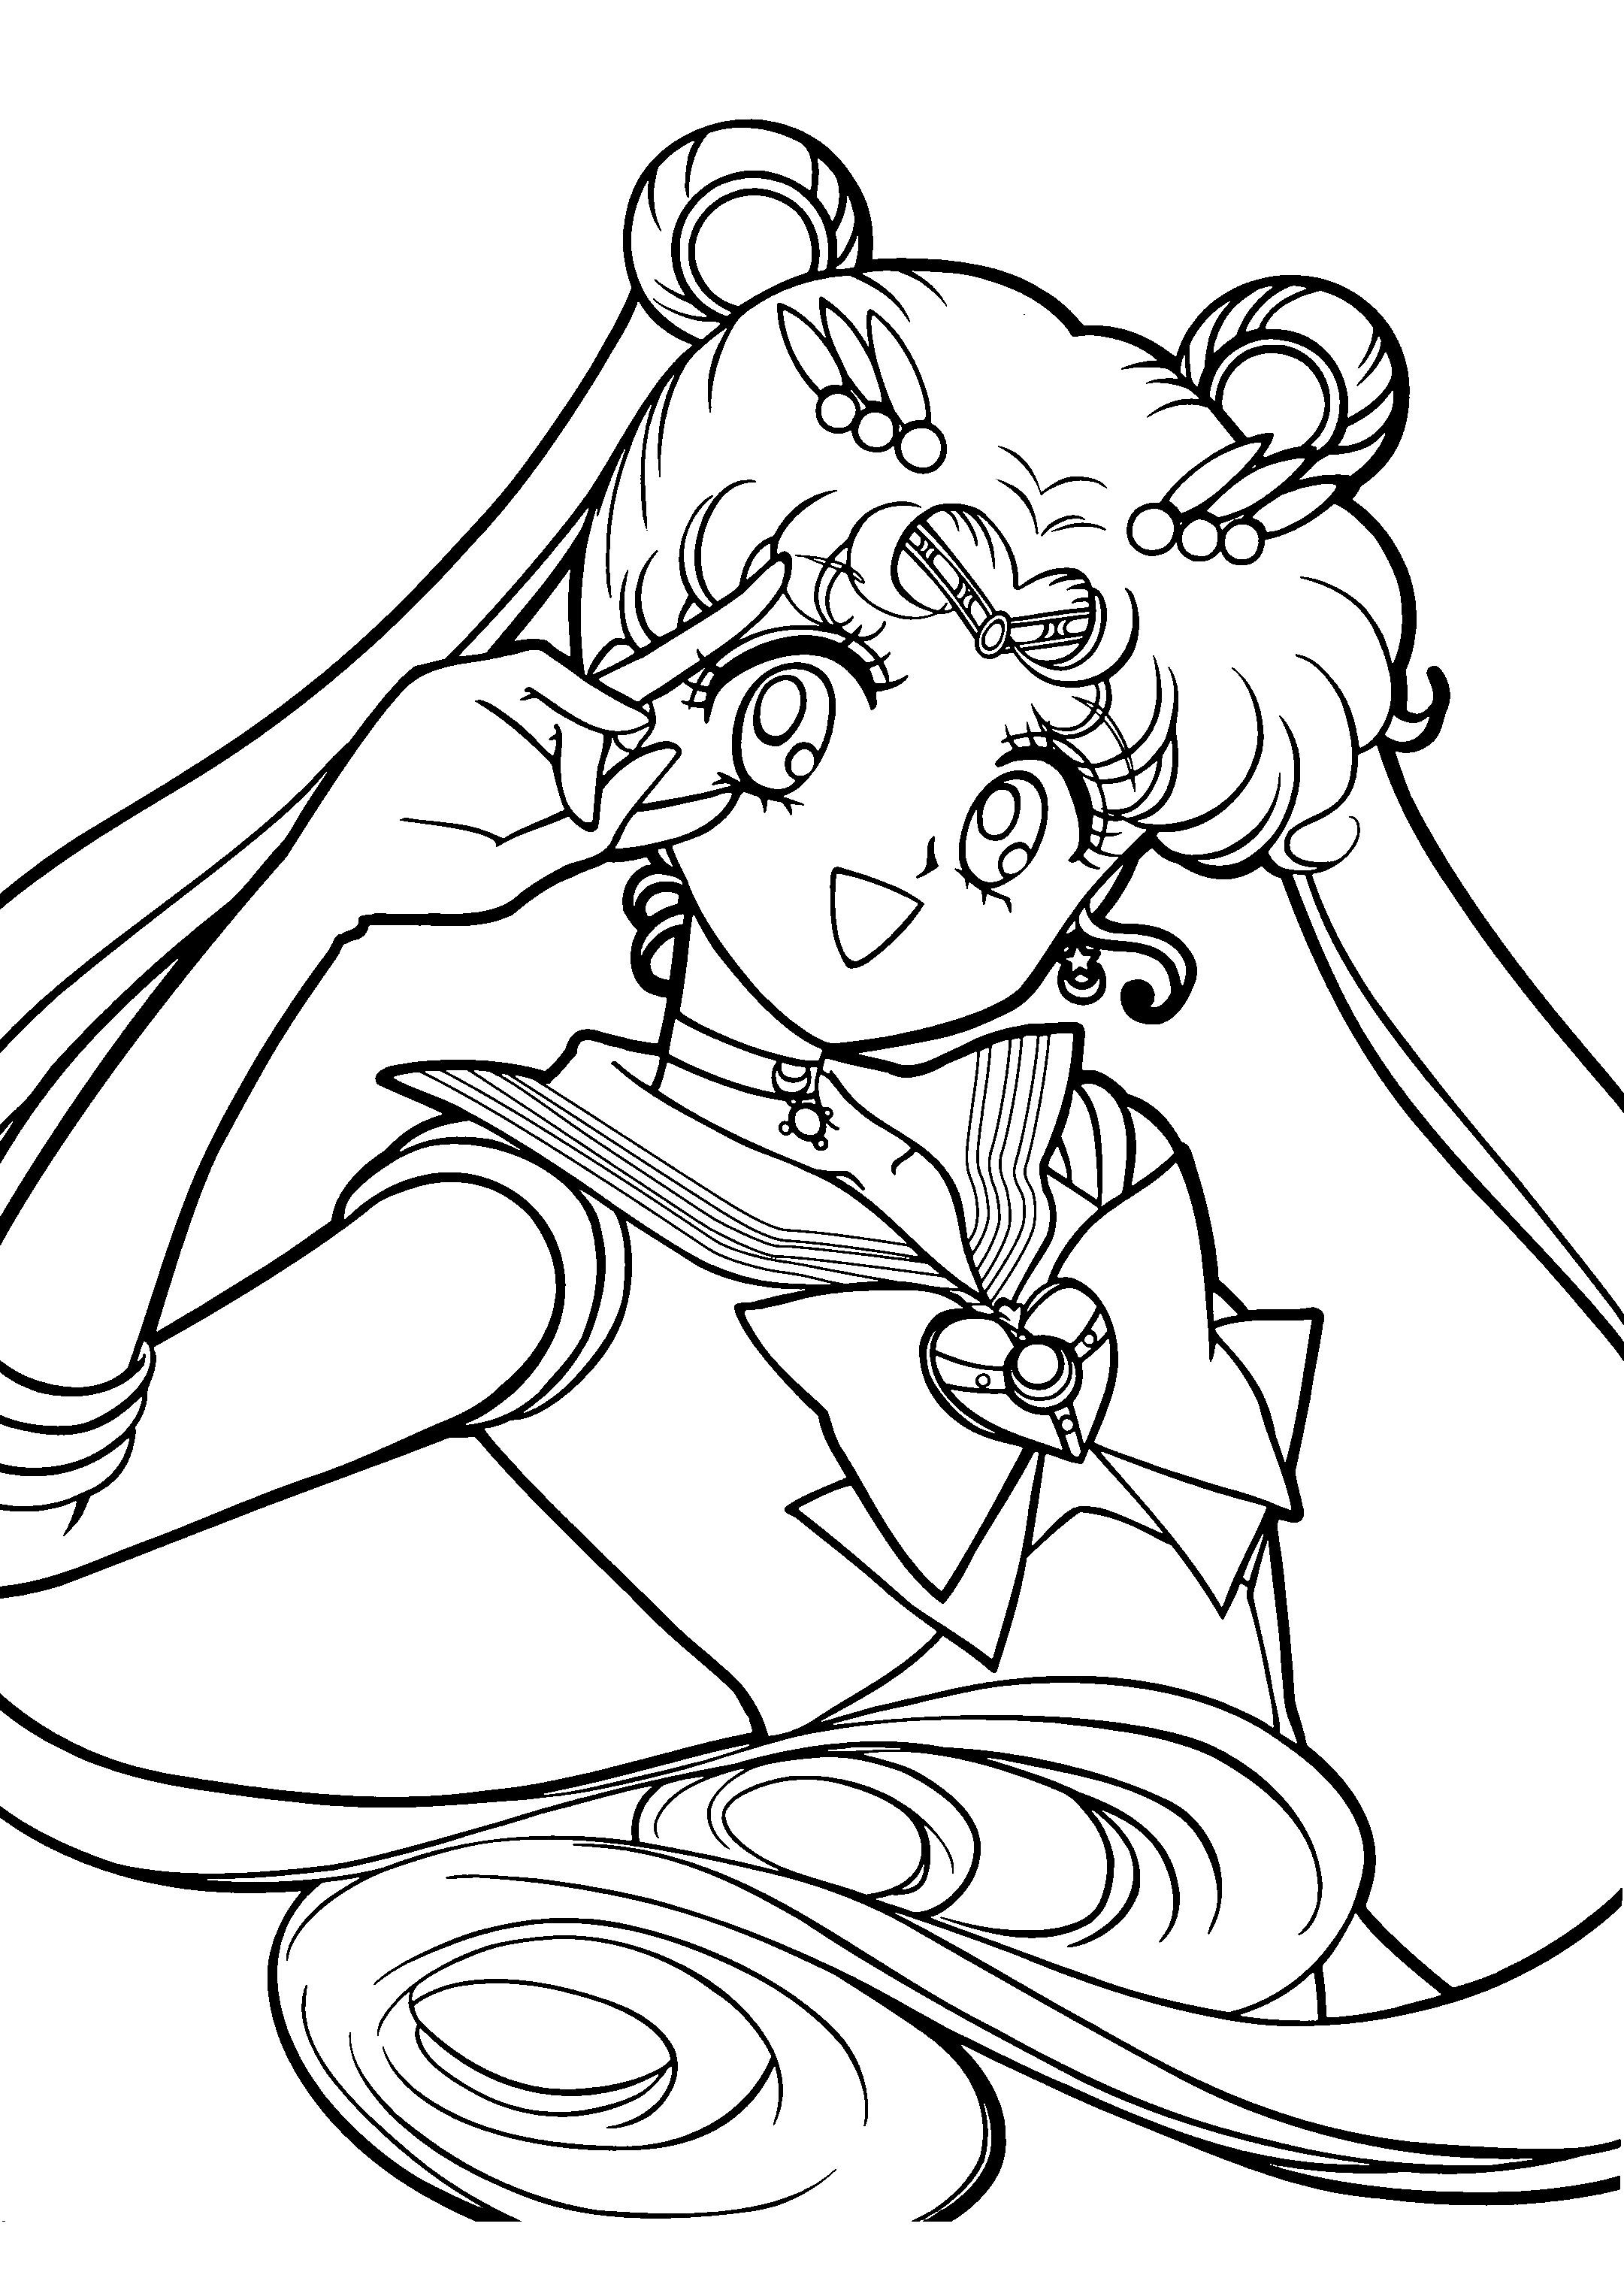 sailor moon coloring page sailormoon sailor moon pinterest